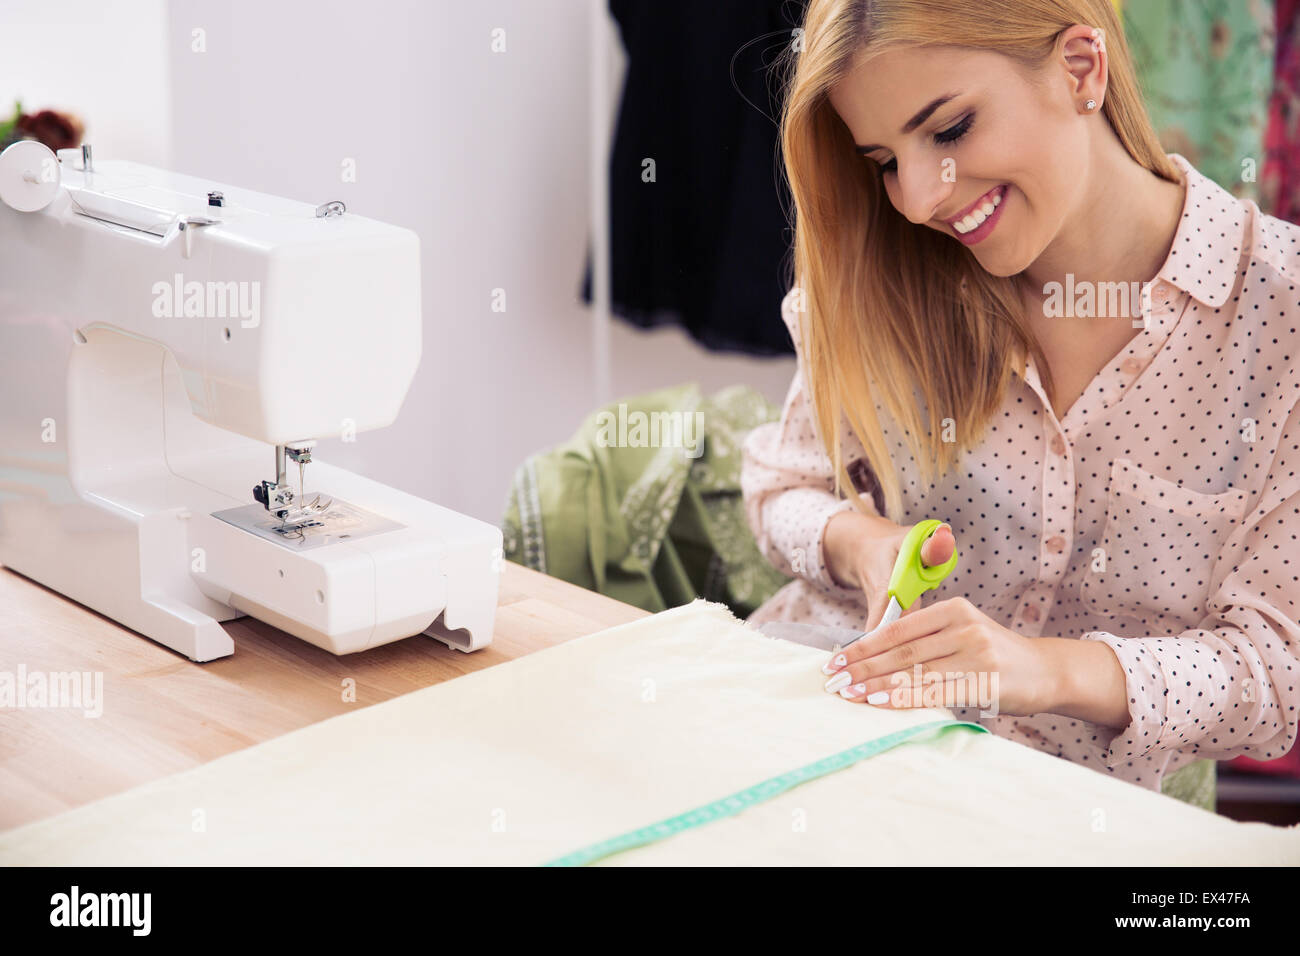 Happy female designer cutting cloth in workshop - Stock Image